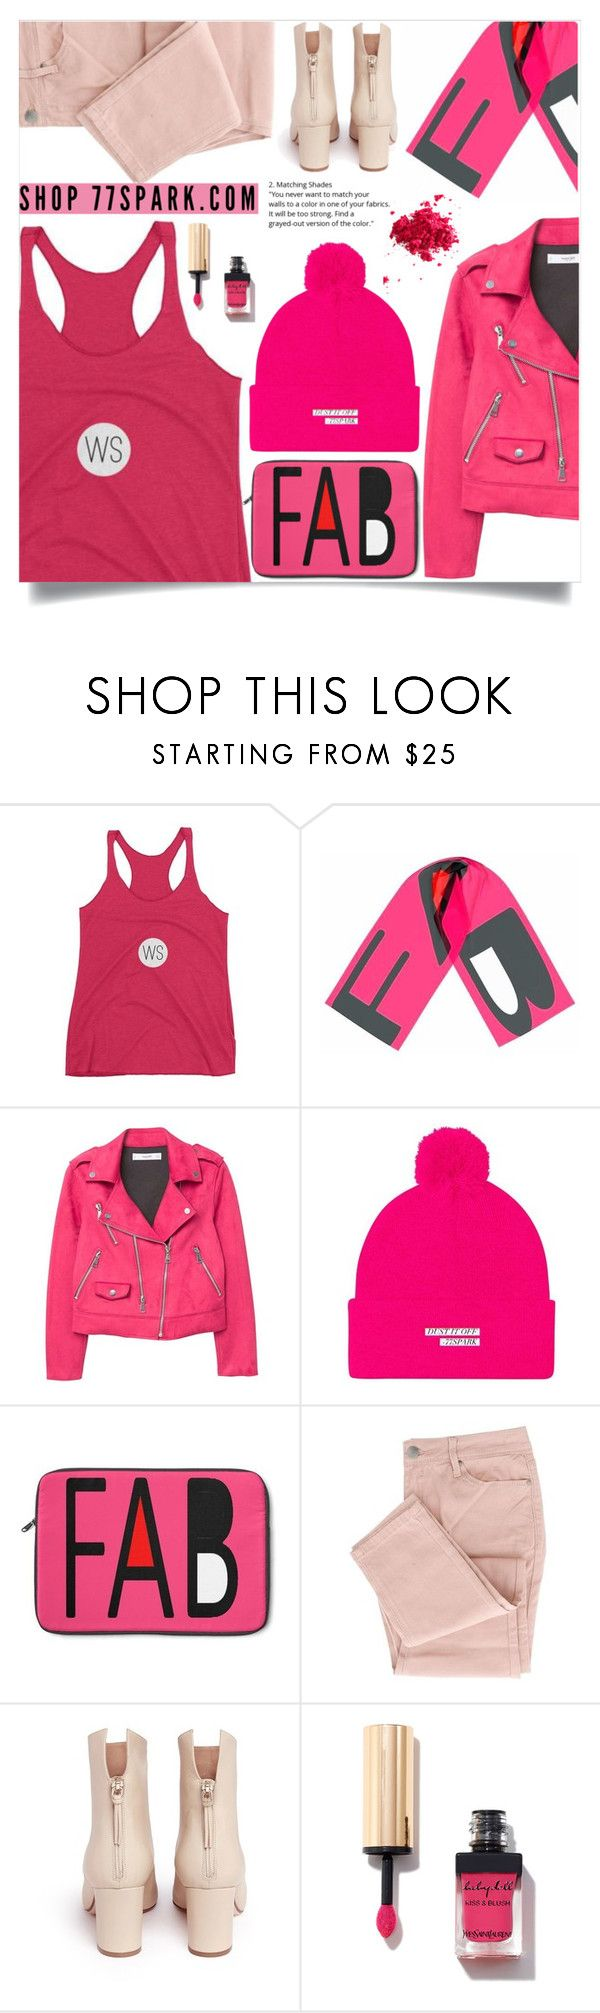 """Think pink! (1)"" by samra-bv ❤ liked on Polyvore featuring MANGO, Francesco Russo and Obsessive Compulsive Cosmetics"